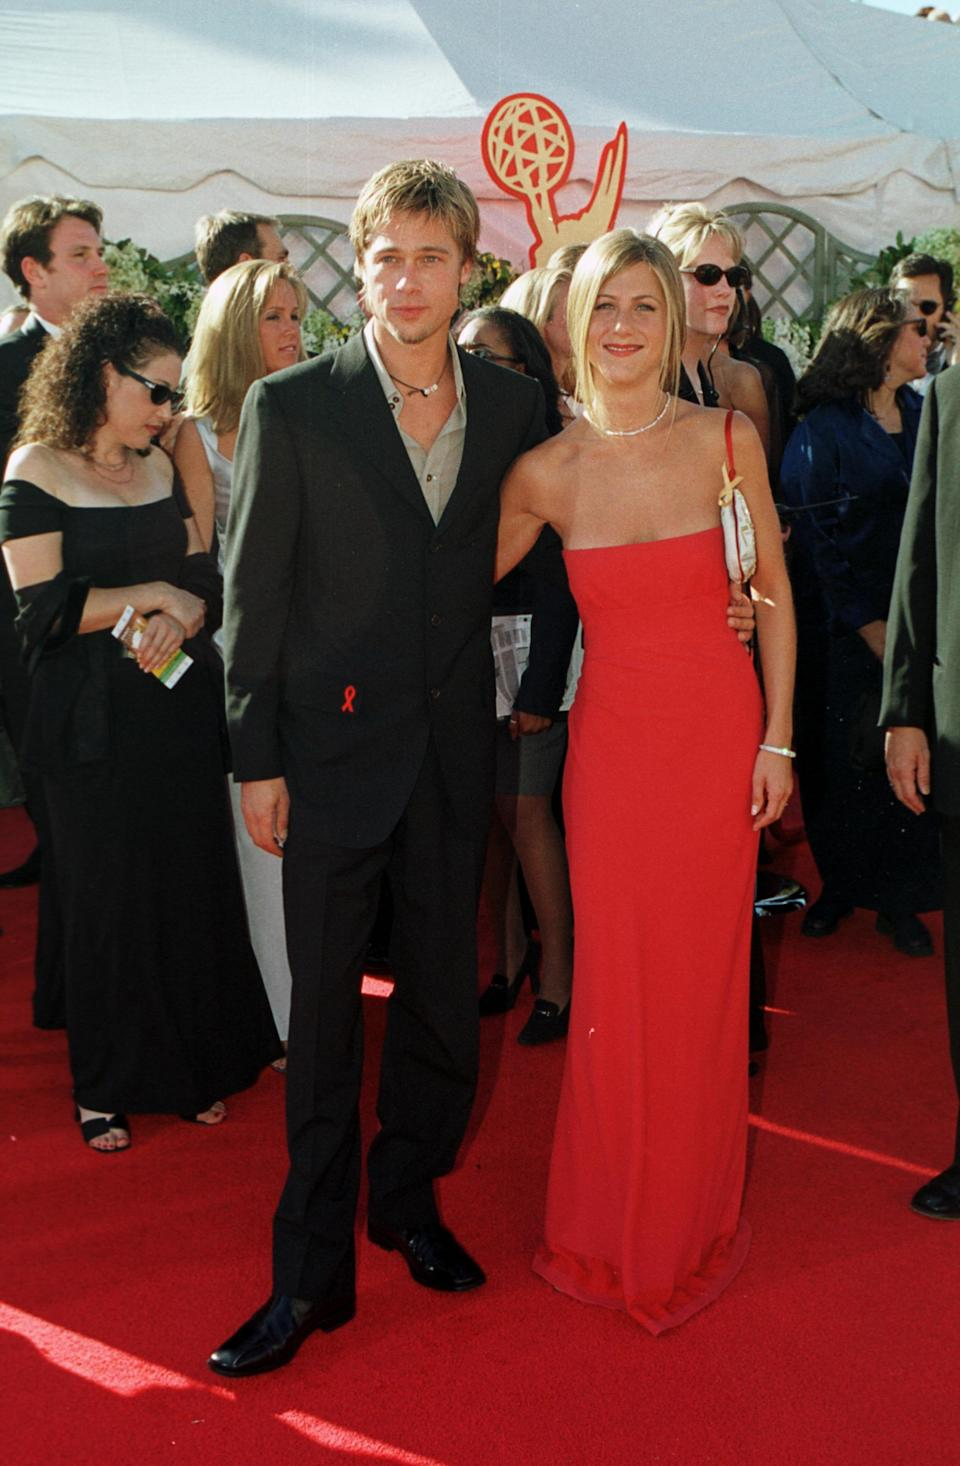 Aniston went for minimalist glam at the 2000 Emmy Awards in a simple strapless Prada gown. (Photo by Steve W. Grayson/Liaison)